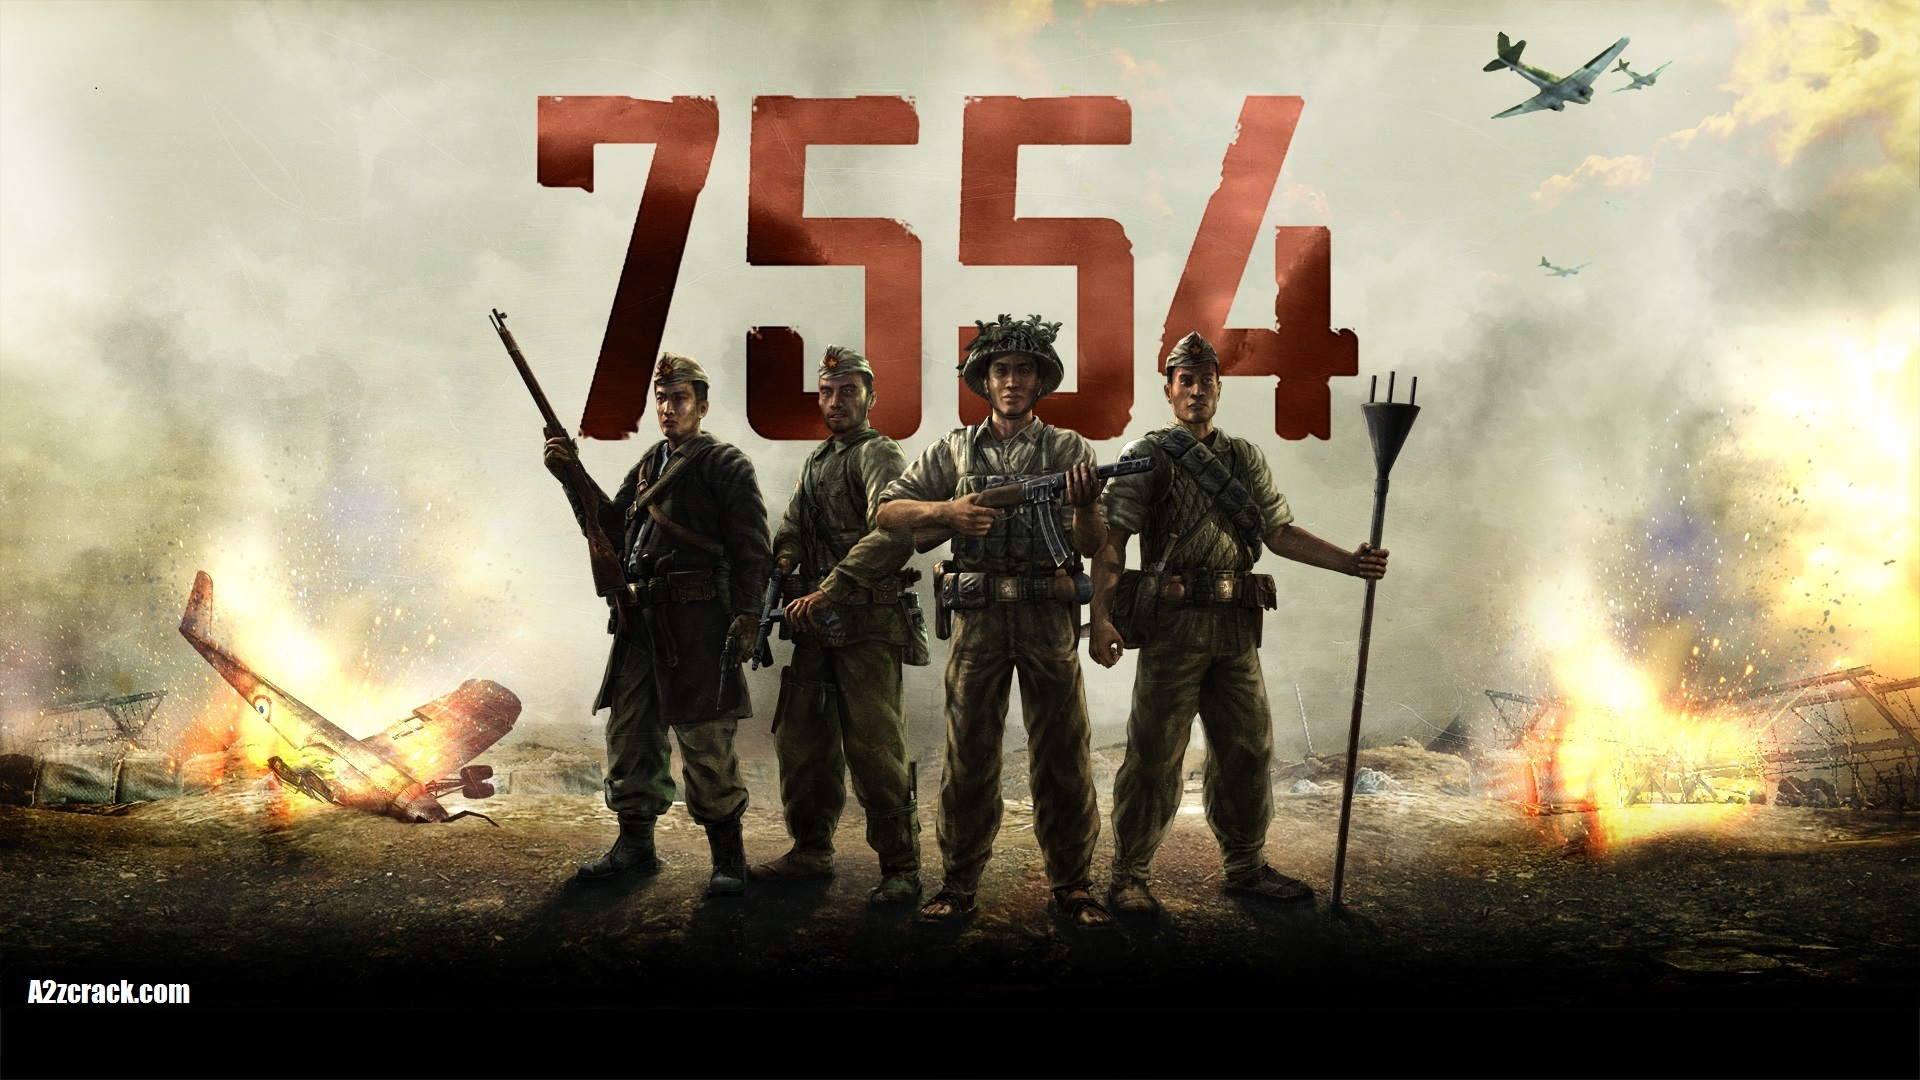 7554 PC Game A2zcrack